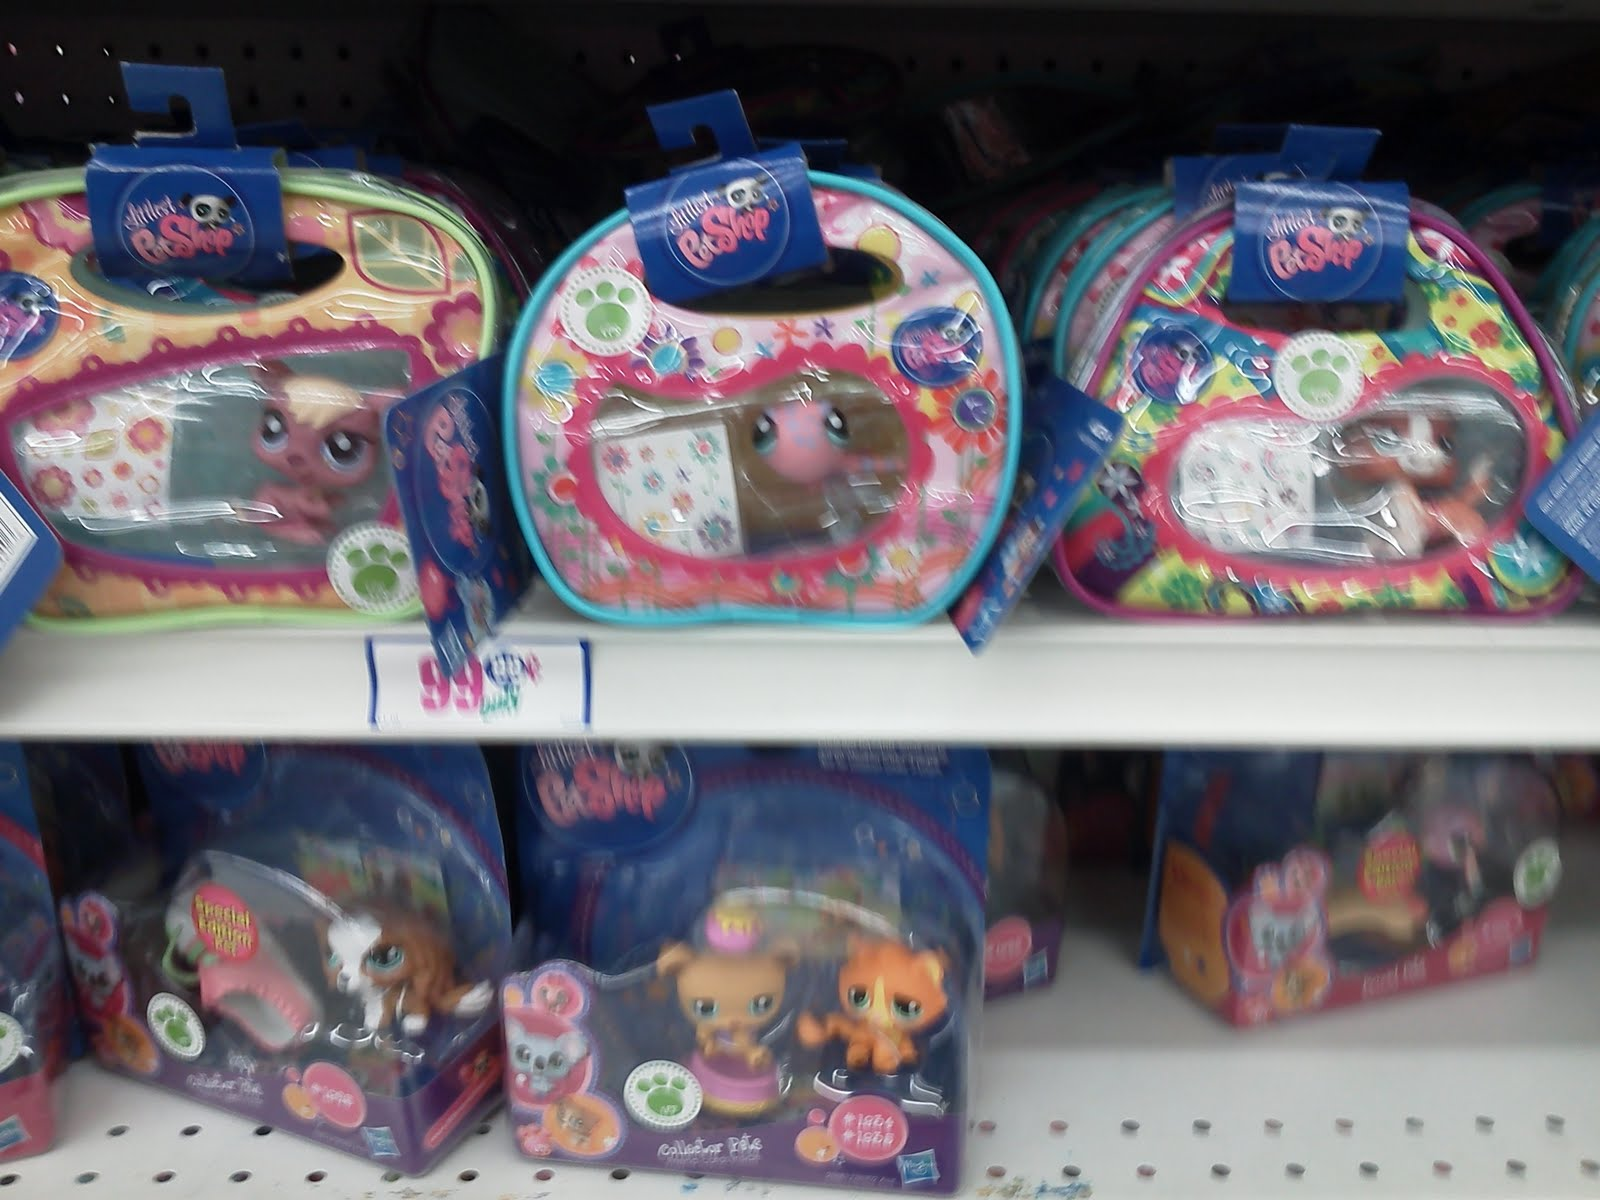 Fresno Frugalista Littlest Pet Shop at the 99 cent Store